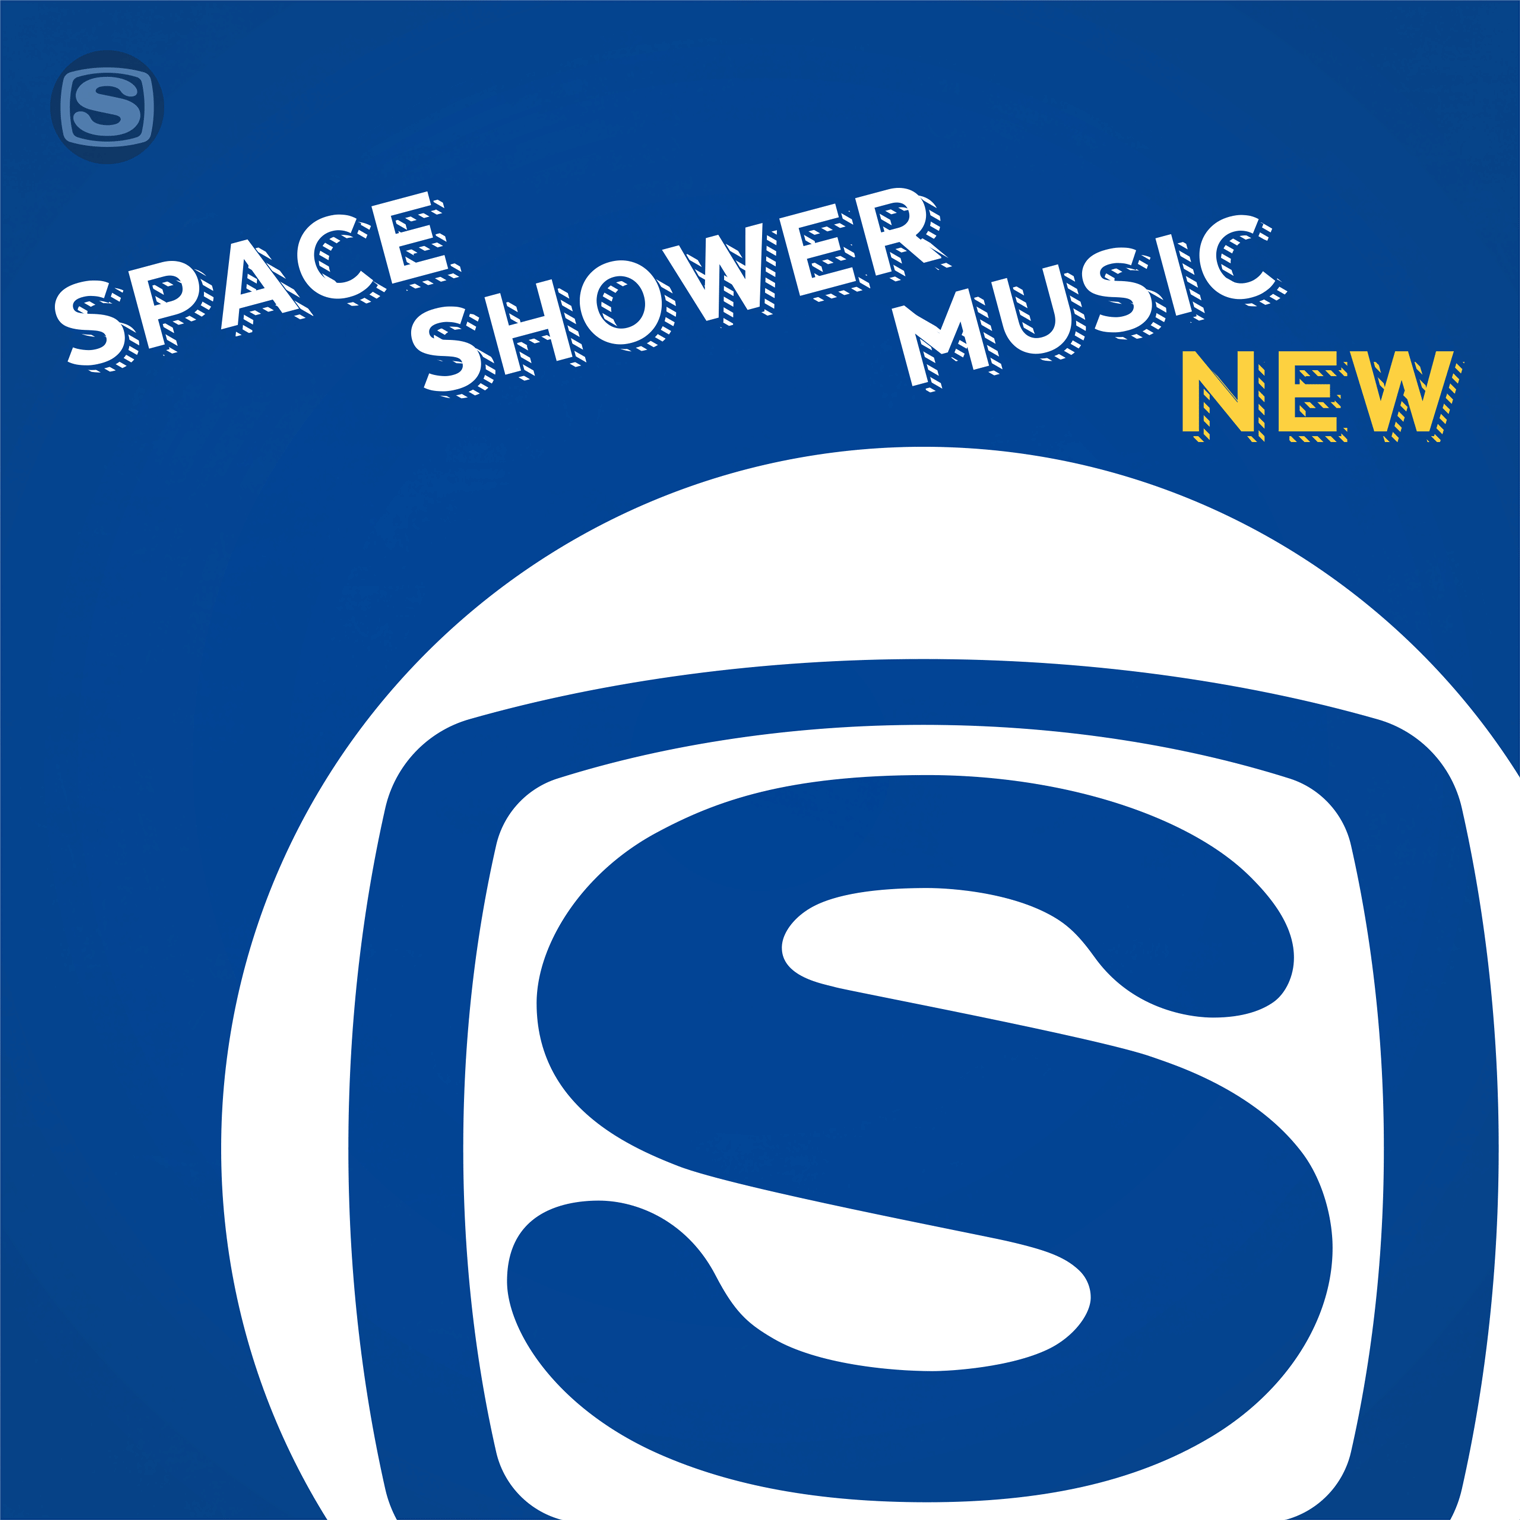 spaceshowermusicspotify001